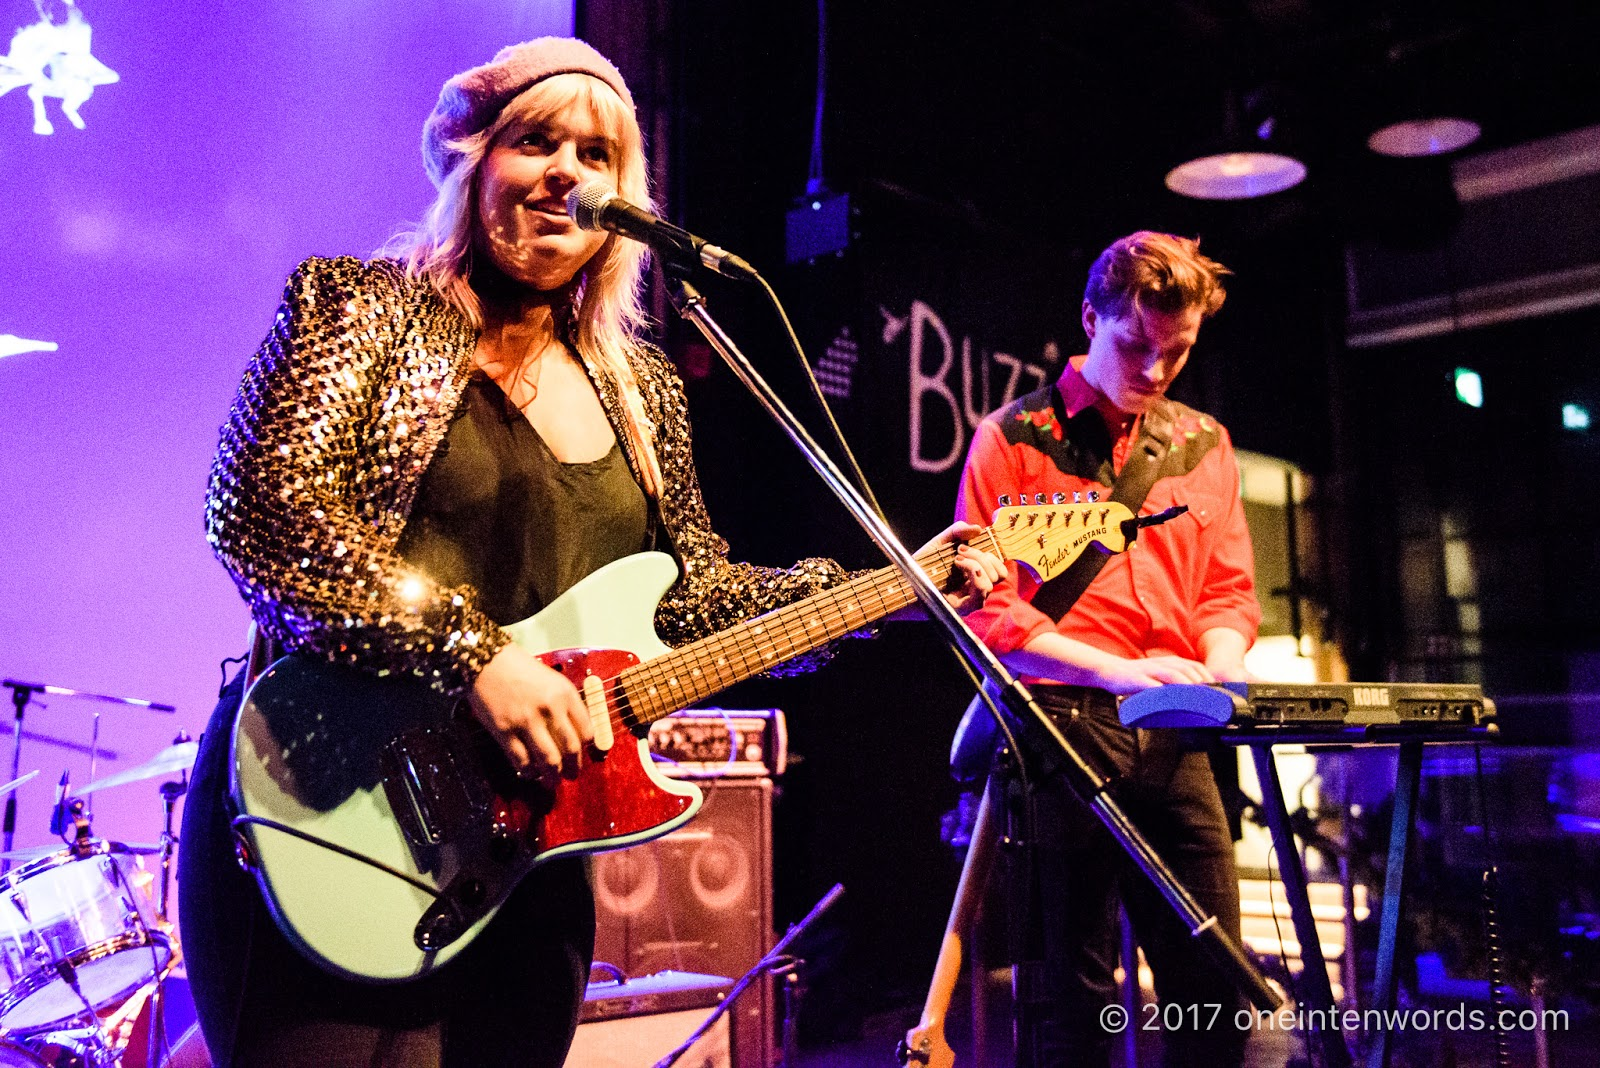 Twist at The Rec Room - Concert Pictures